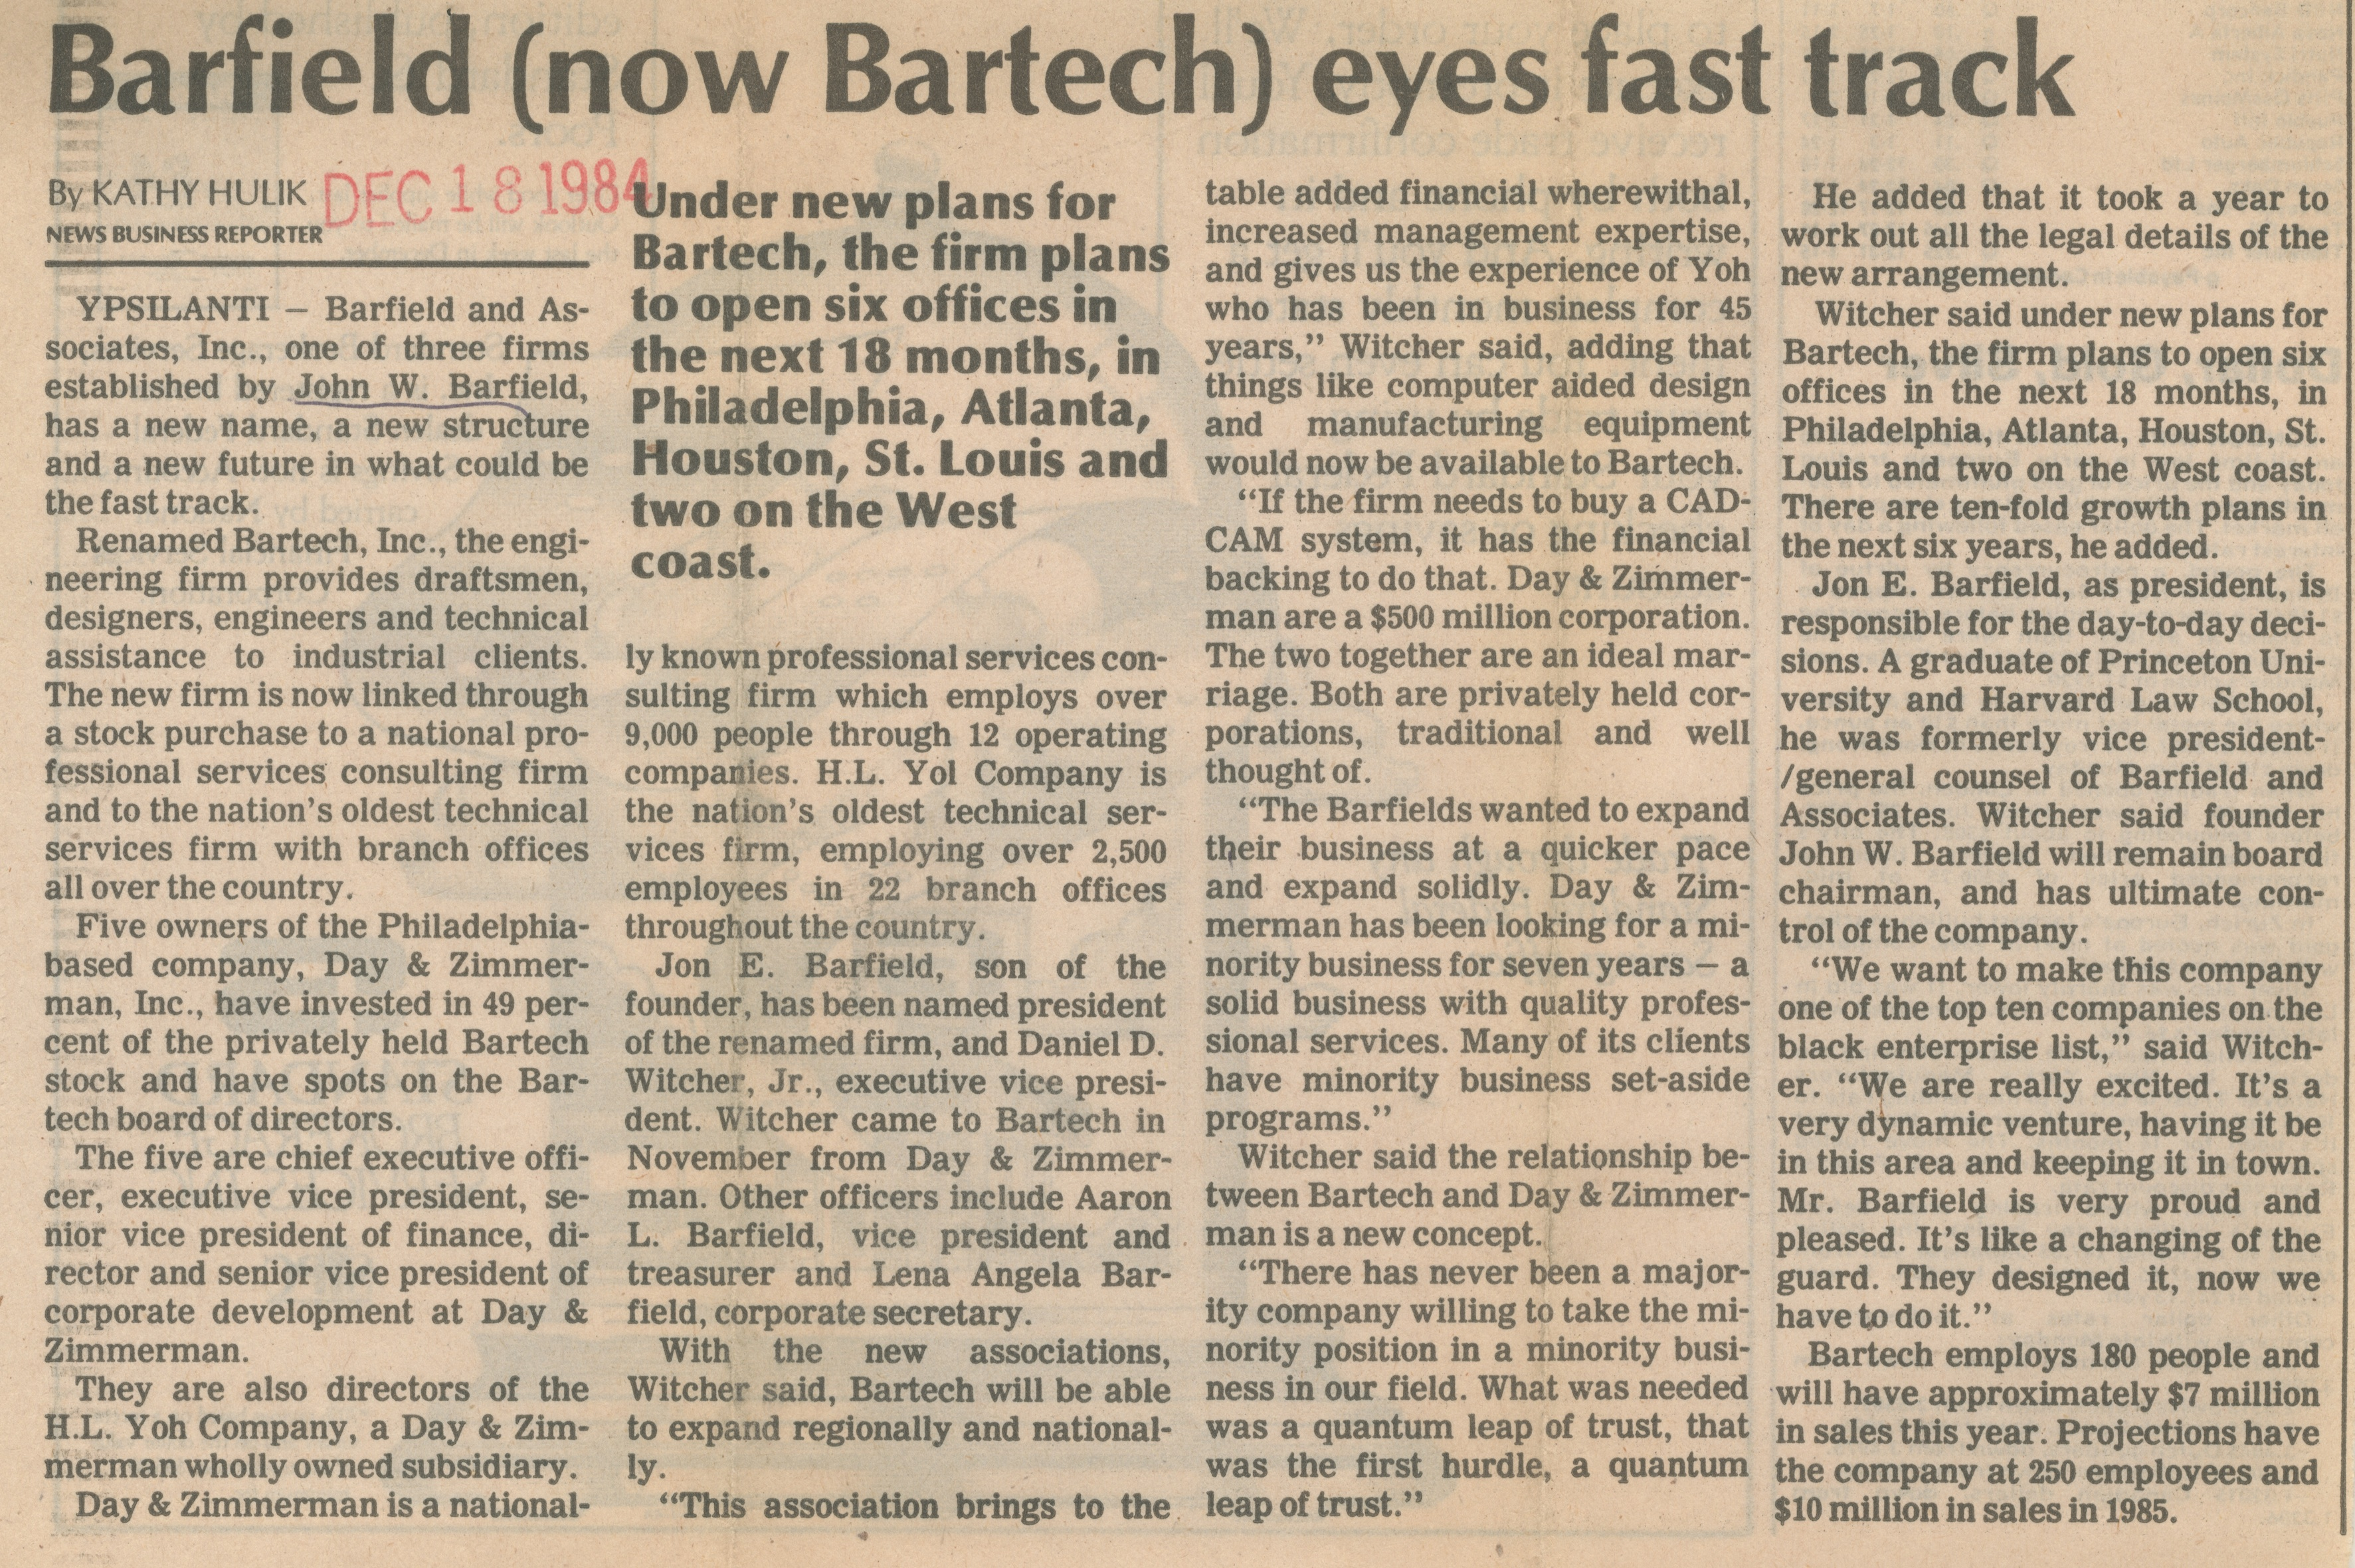 Barfield (Now Bartech) Eyes Fast Track image